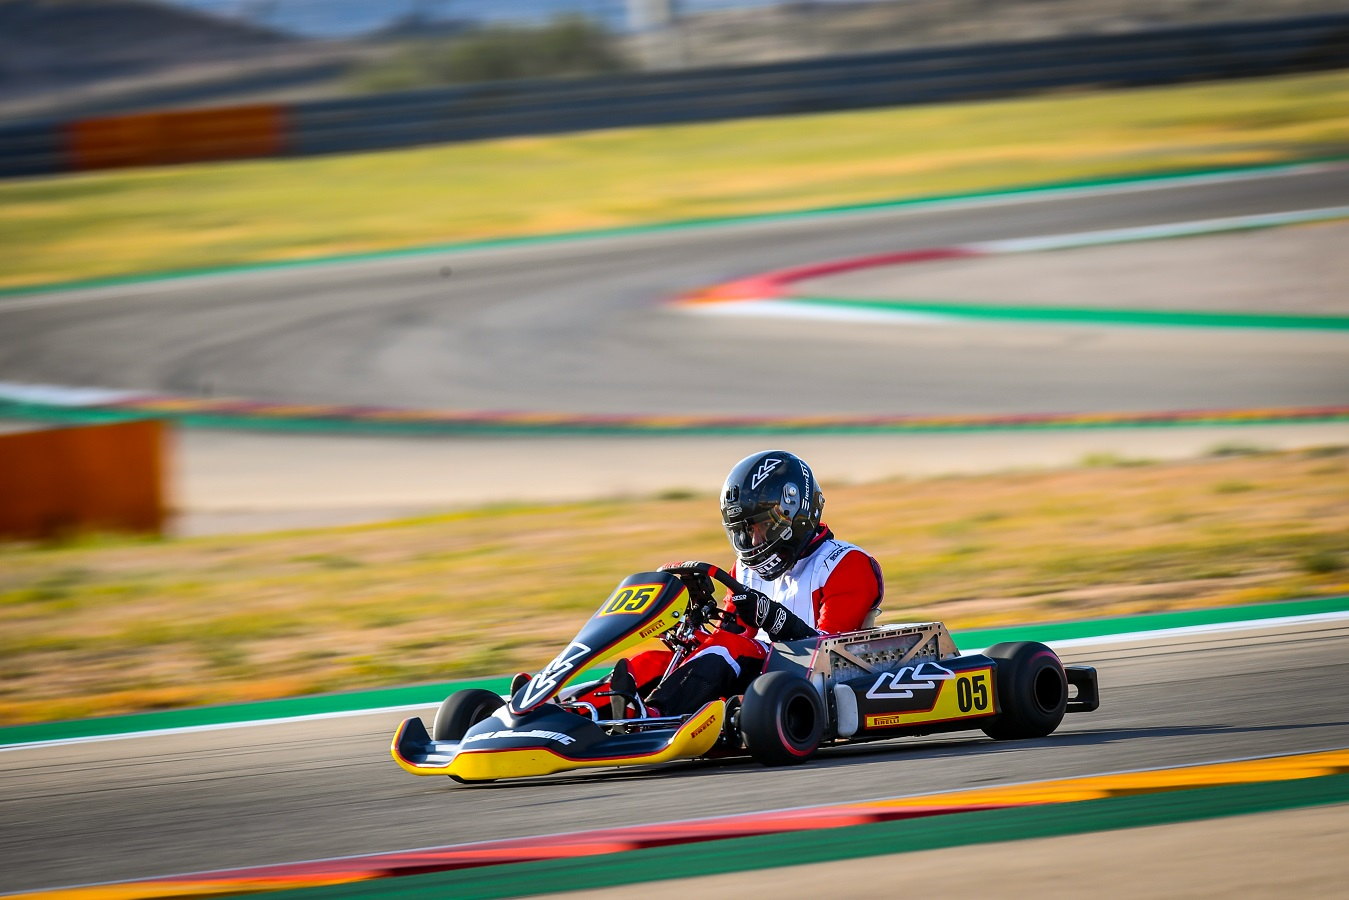 Guillaume Meura eKarting Record Play and Drive Pirelli Motorland